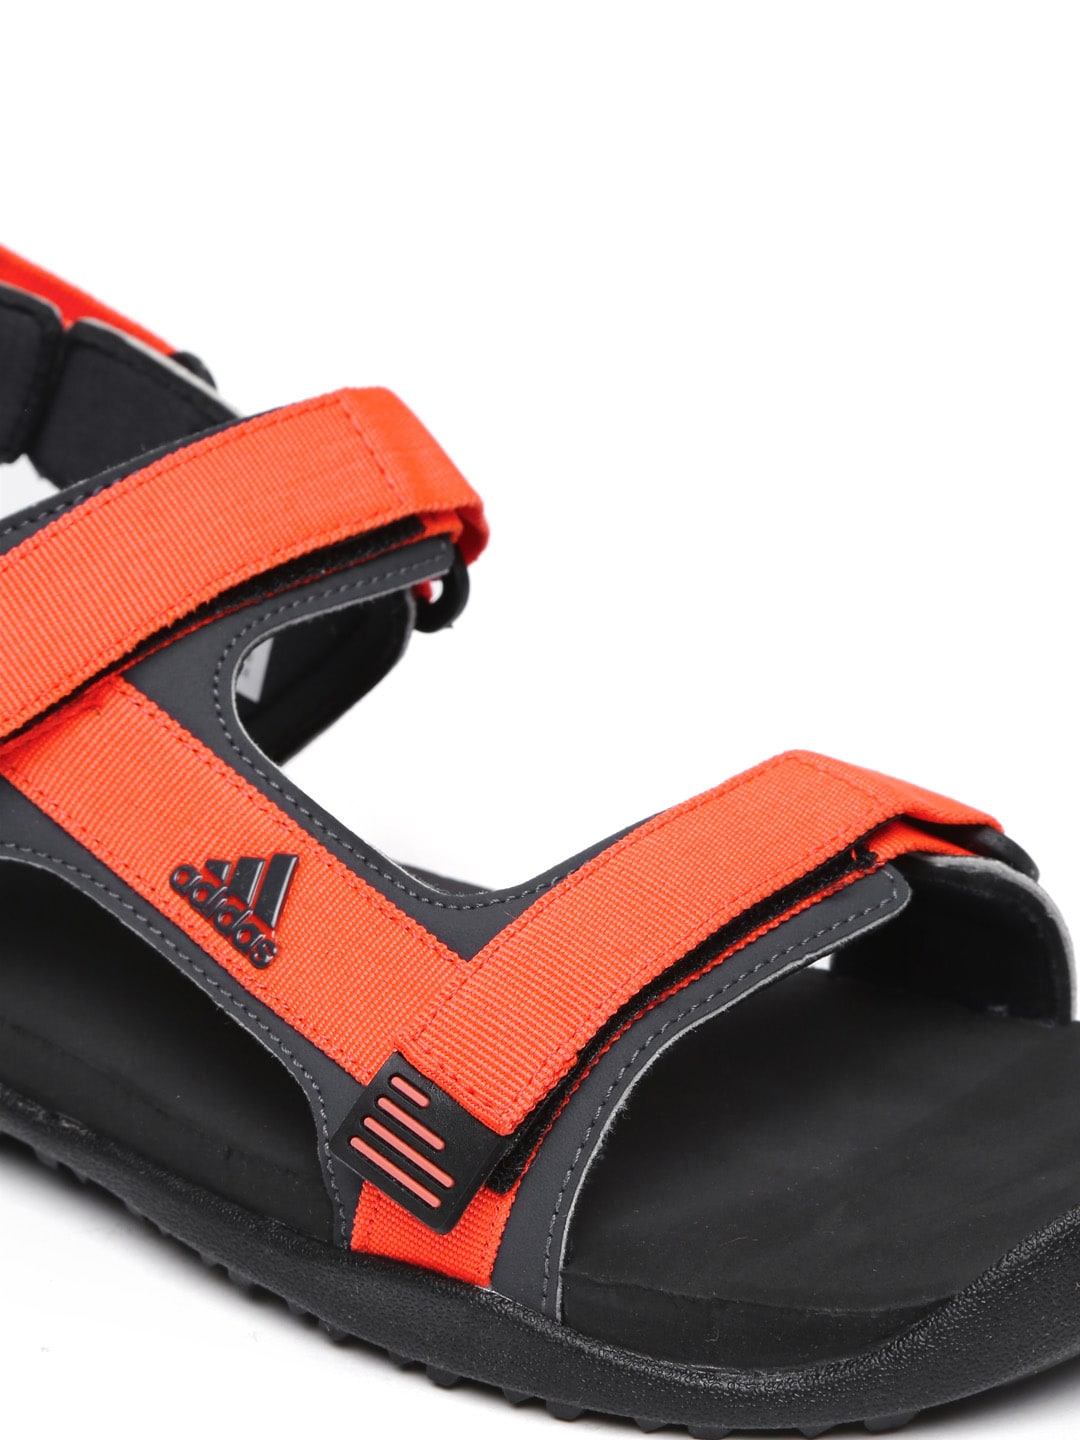 b8a4d0fdb96 Buy adidas flip flops orange   OFF43% Discounted